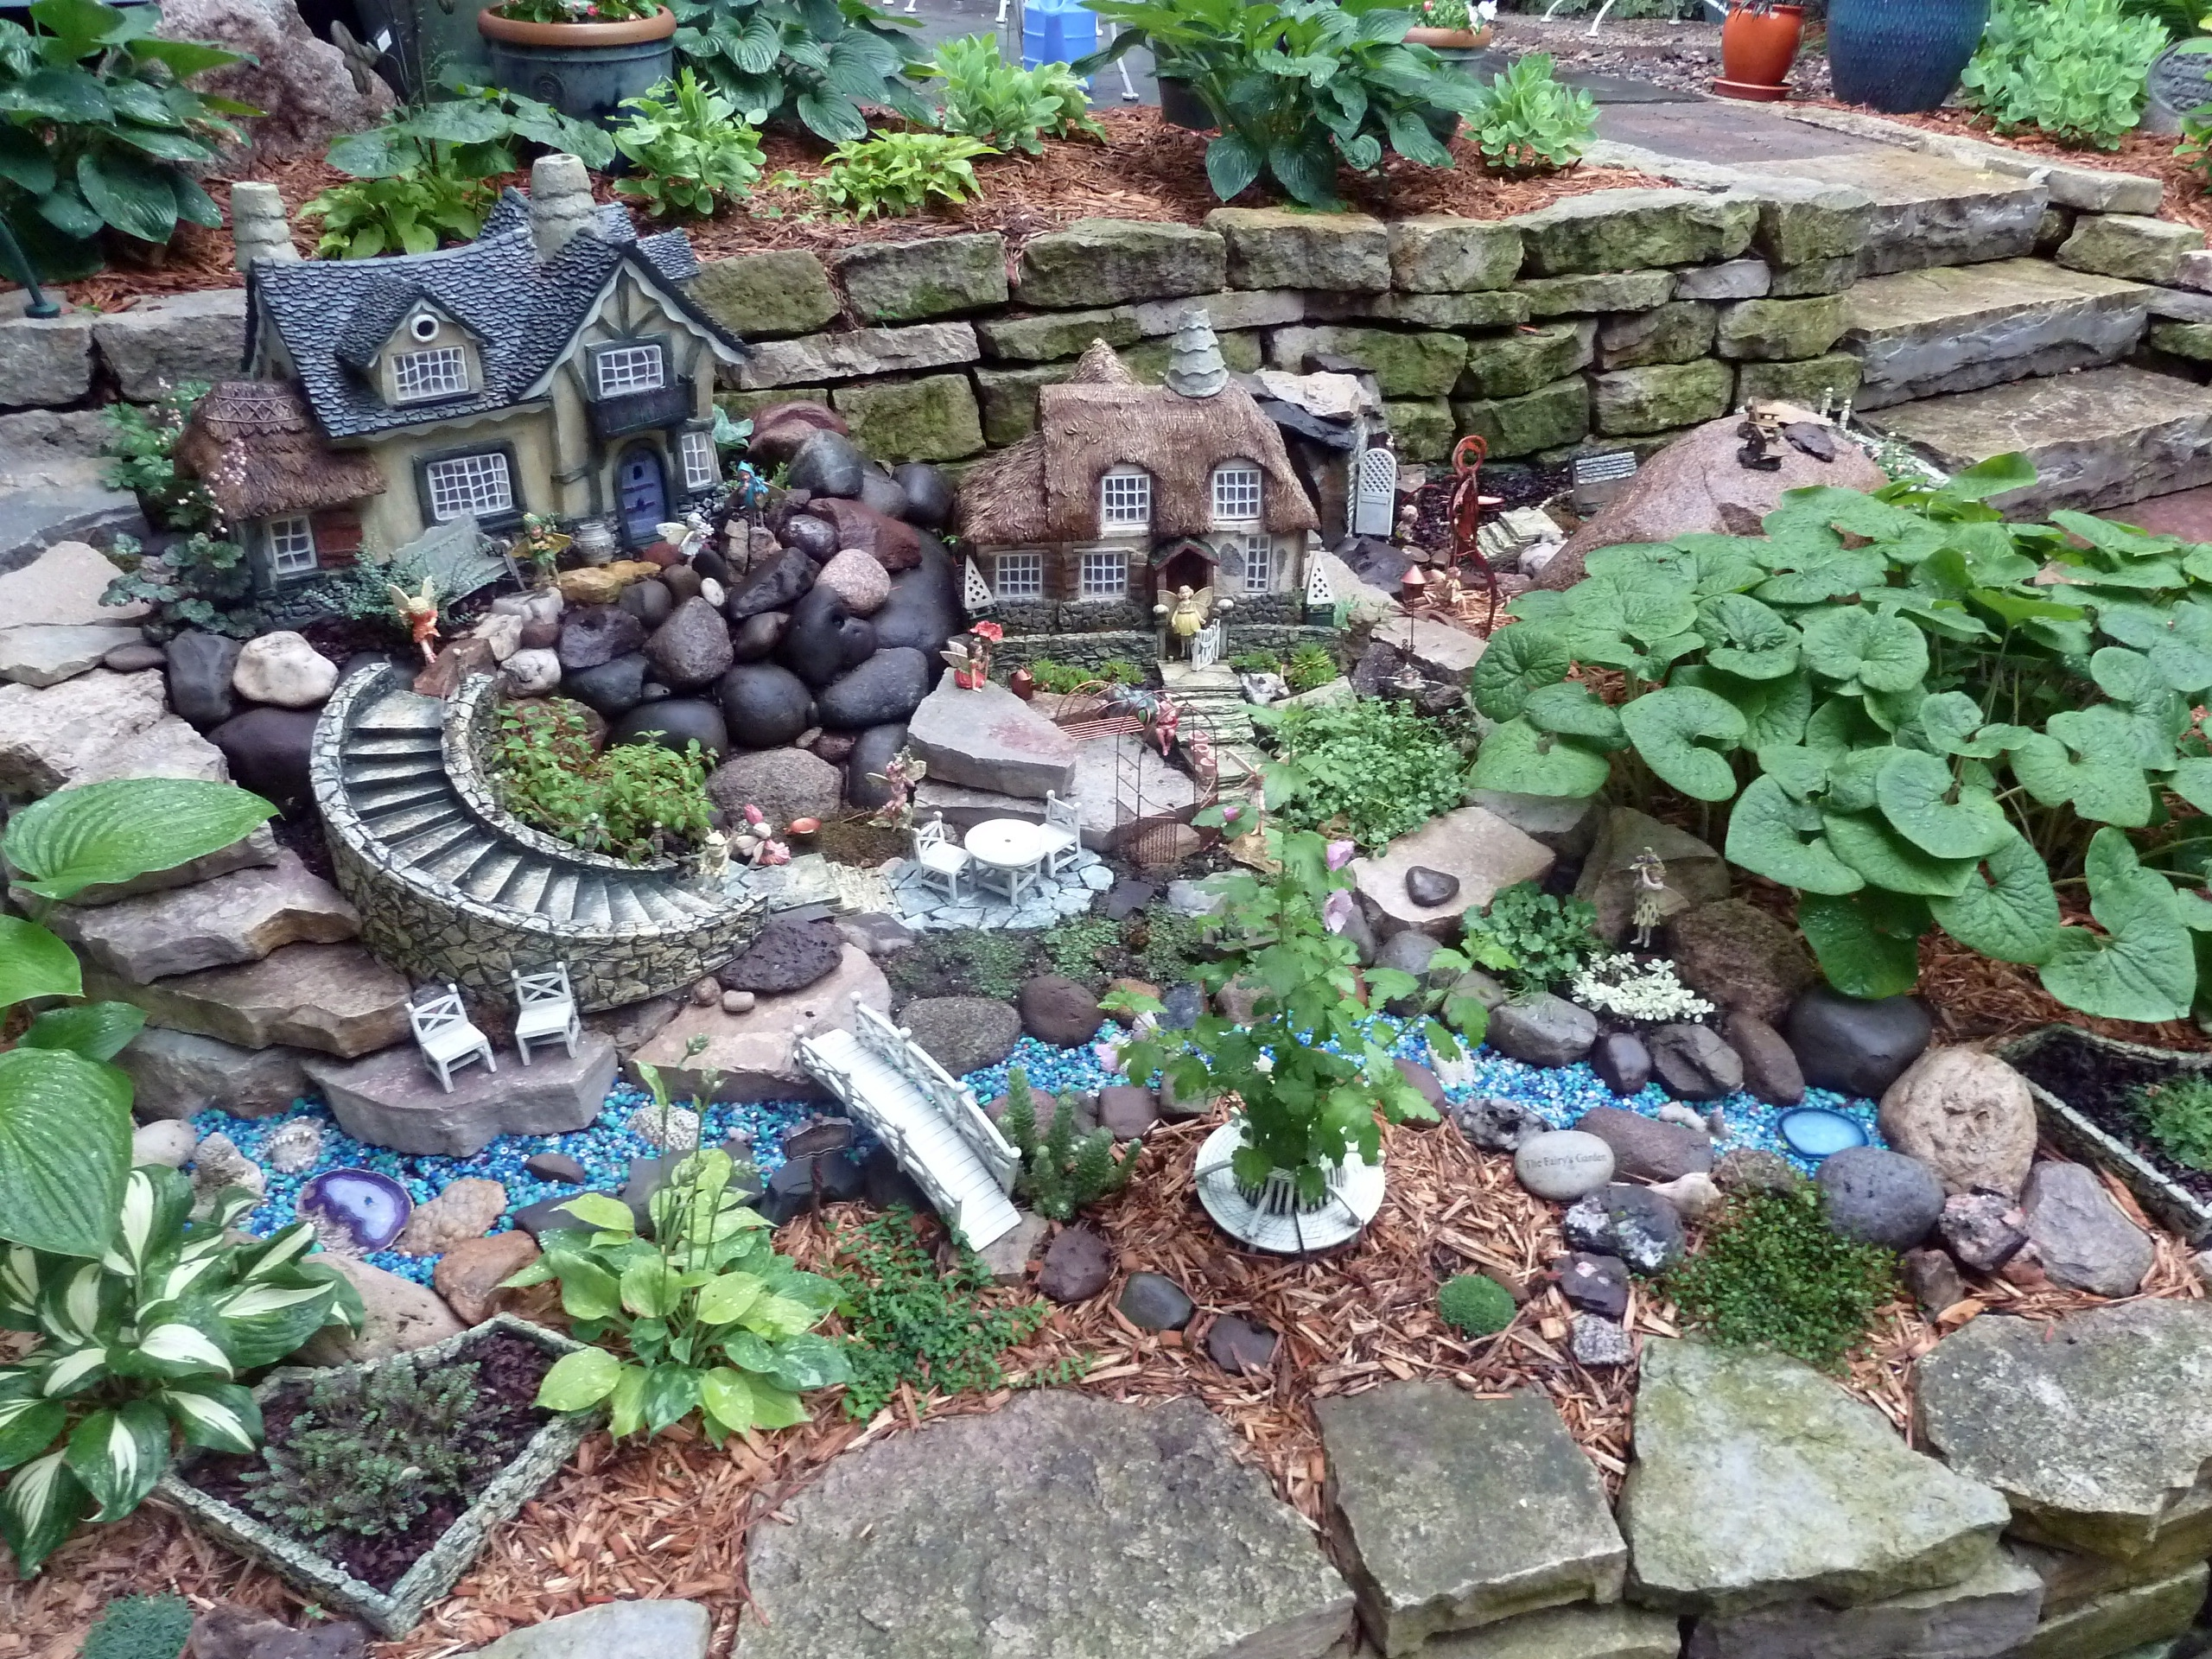 elaborate garden set up, including two fairy houses, a tiny winding staircase, several figurines and accessories, how to make a fairy garden, different kinds of plants